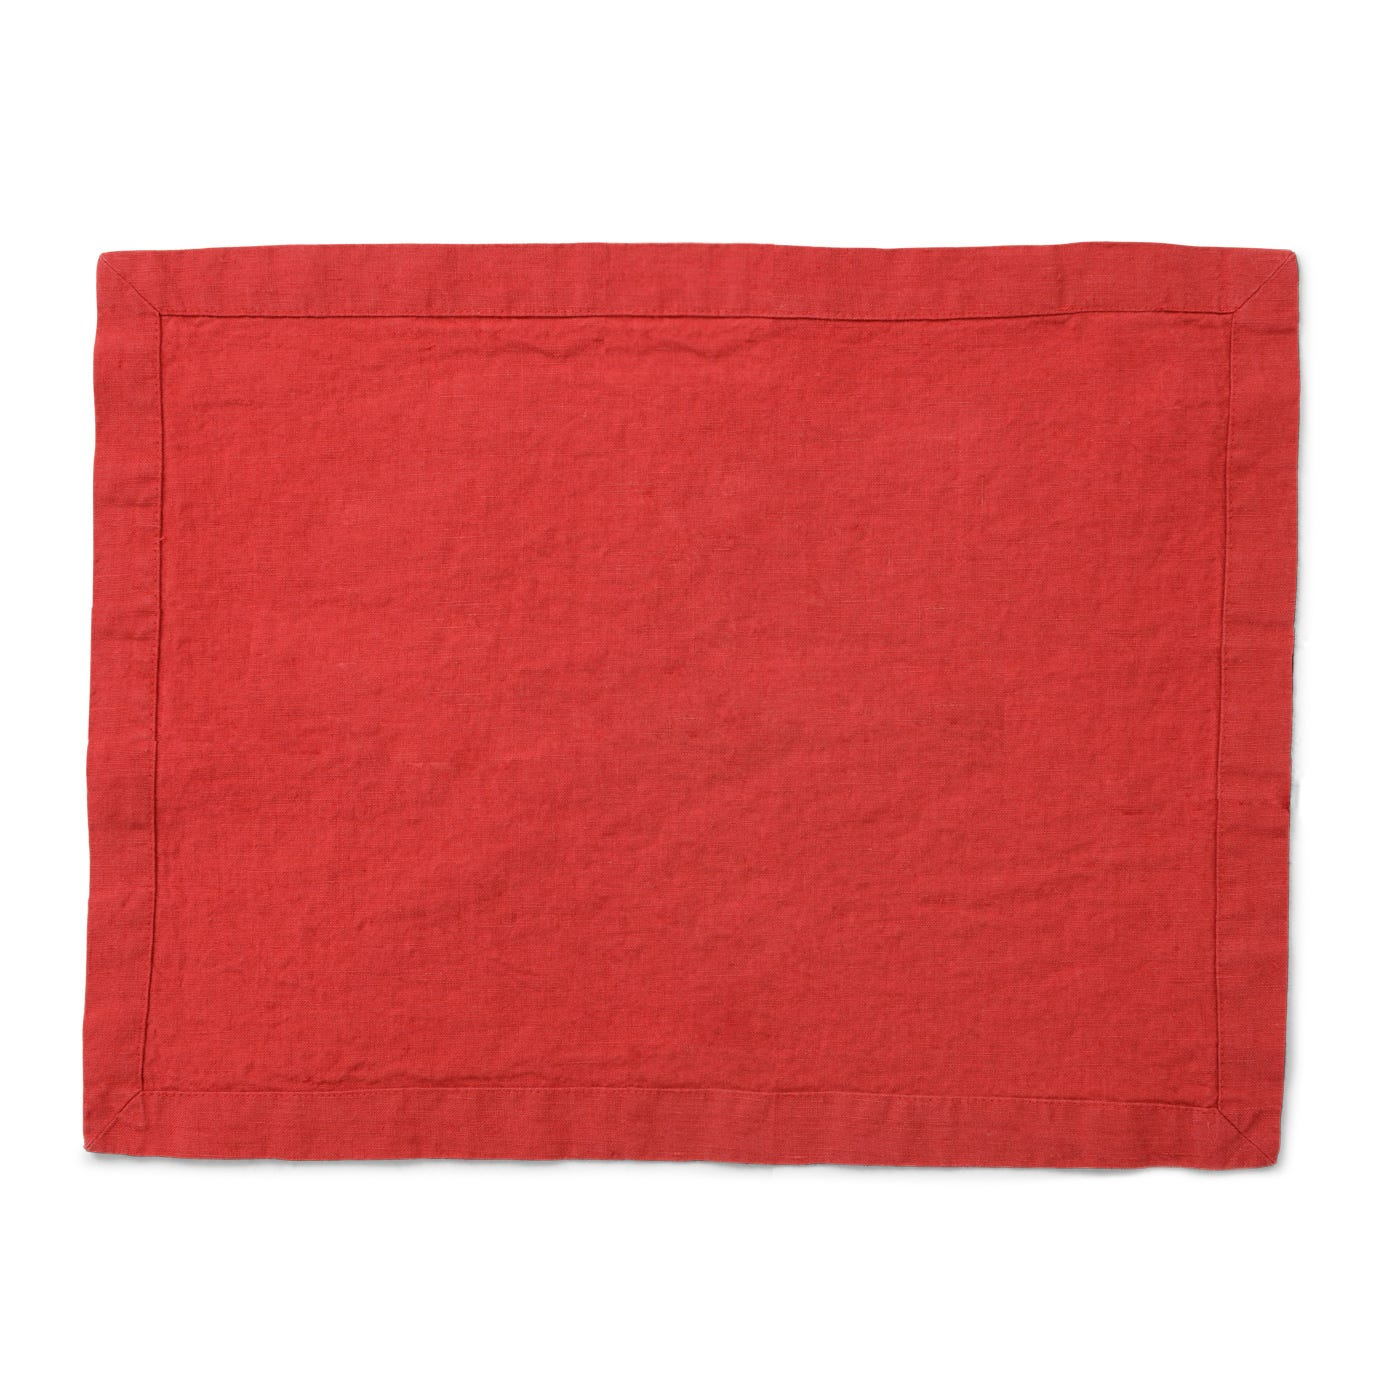 Heal's Heal's Linen Placemat Red